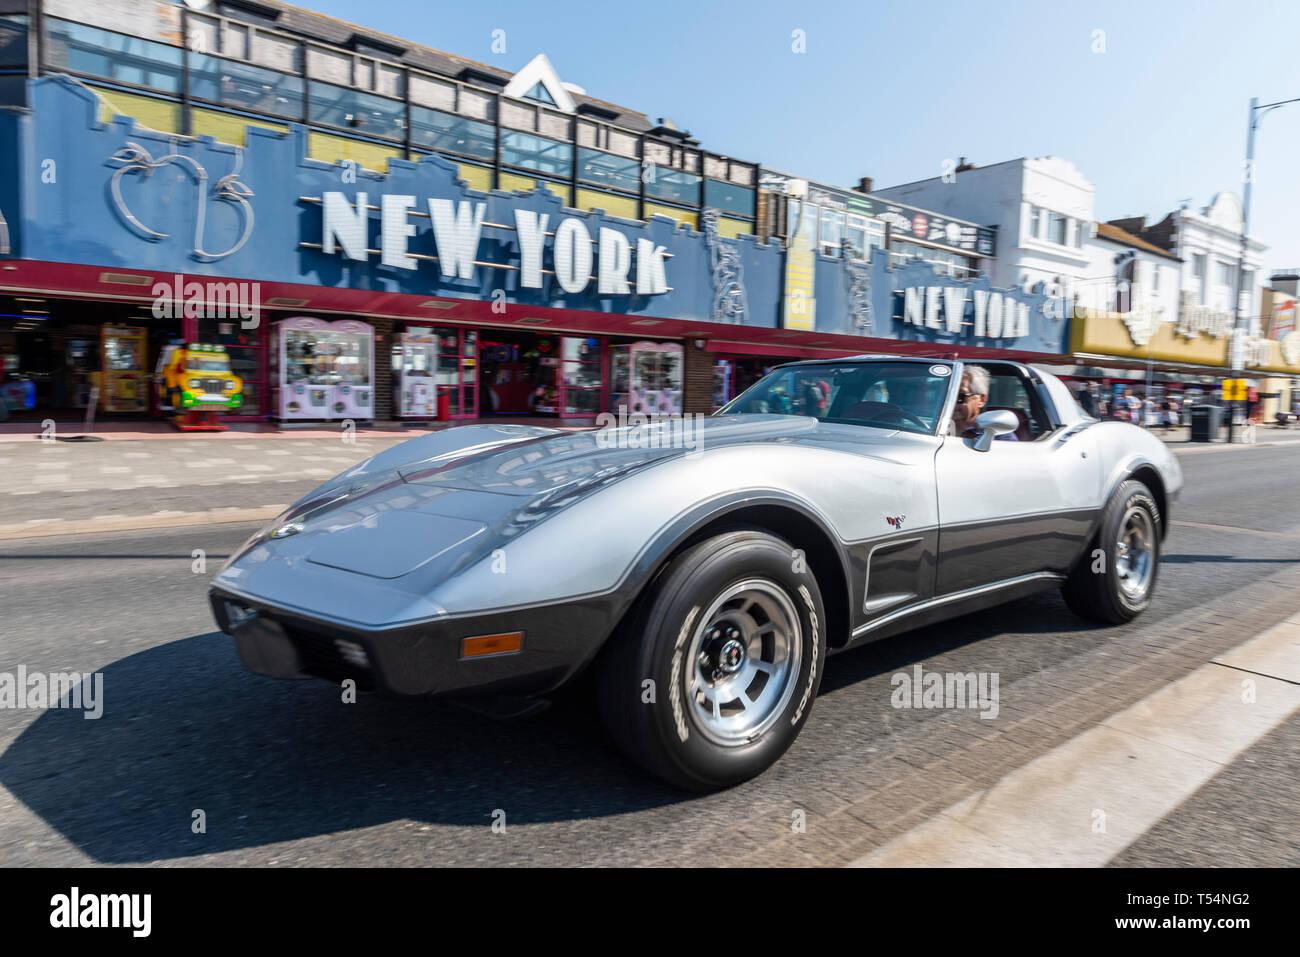 Classic car show taking place along the seafront at Marine Parade, Southend on Sea, Essex, UK. Chevrolet Corvette Stingray driving past New York amusement arcade Stock Photo